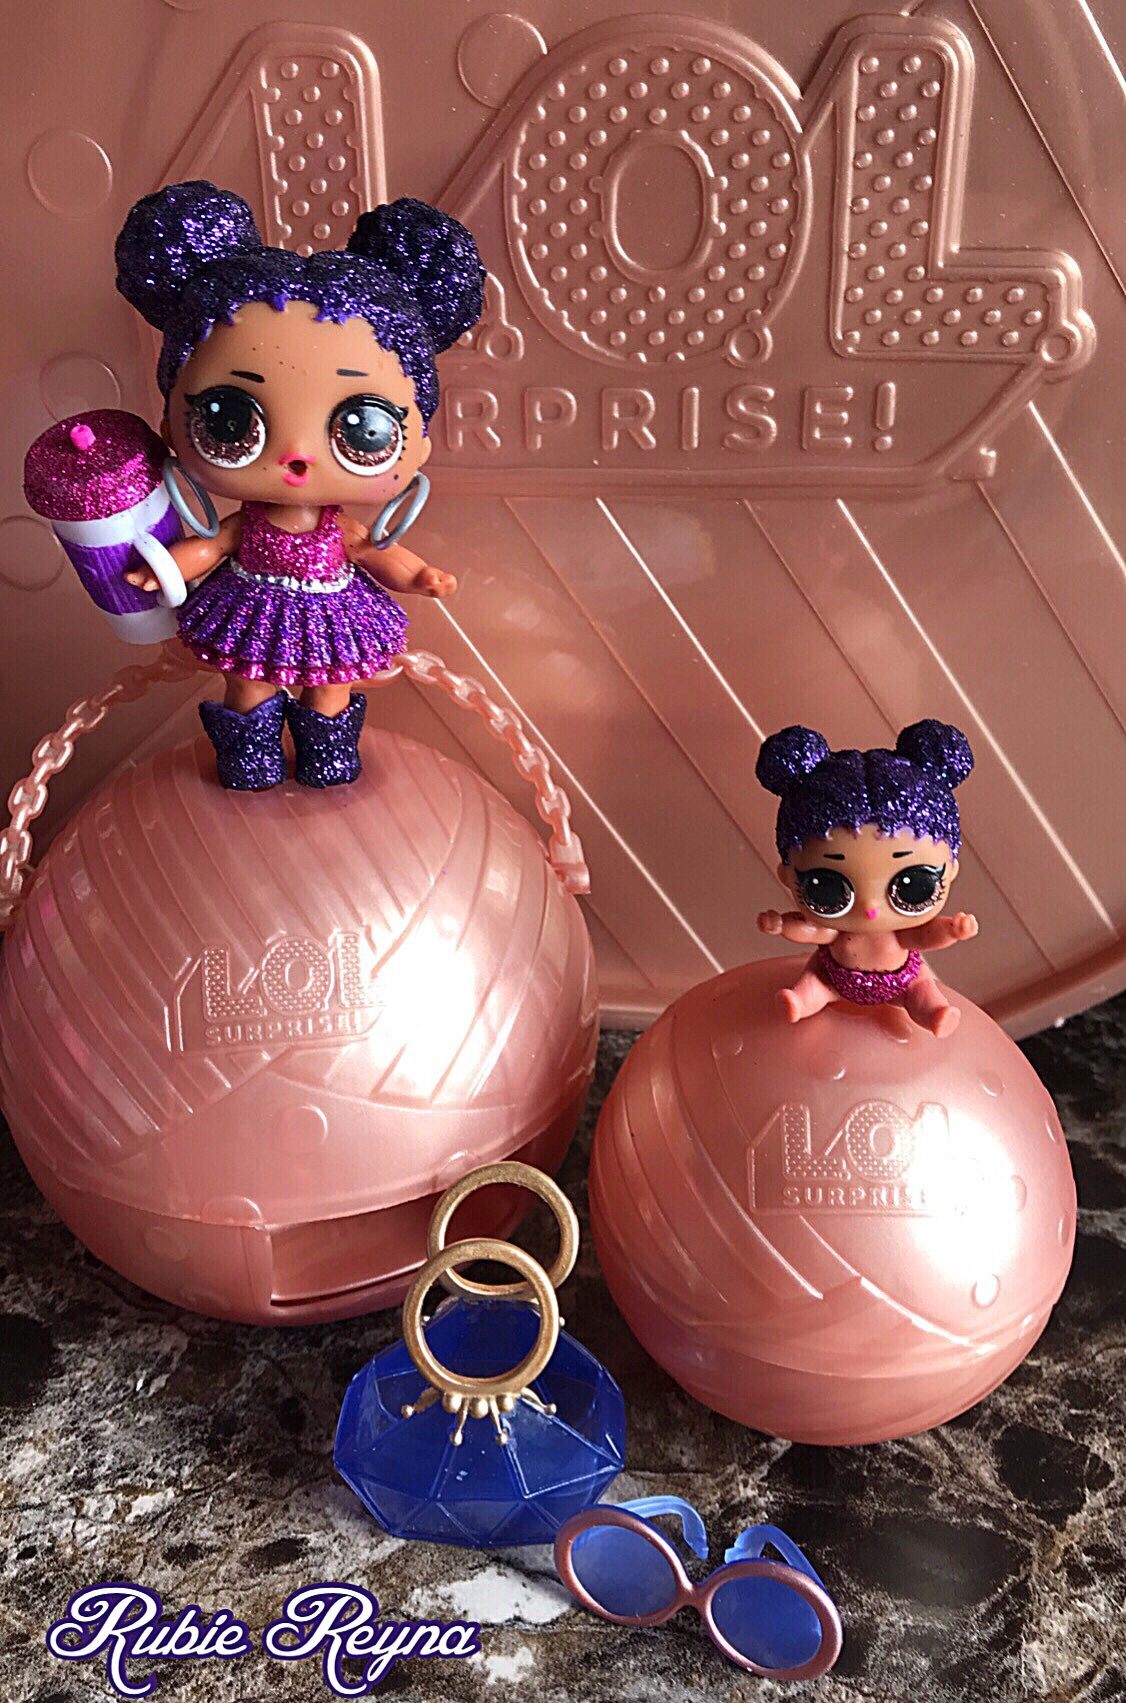 These Are My Daughter S Lol Dolls Purple Queen Her Lil Sister They Re Both Super Glittery And Just So Beautiful You Can Lol Dolls Toys For Girls Top Toys